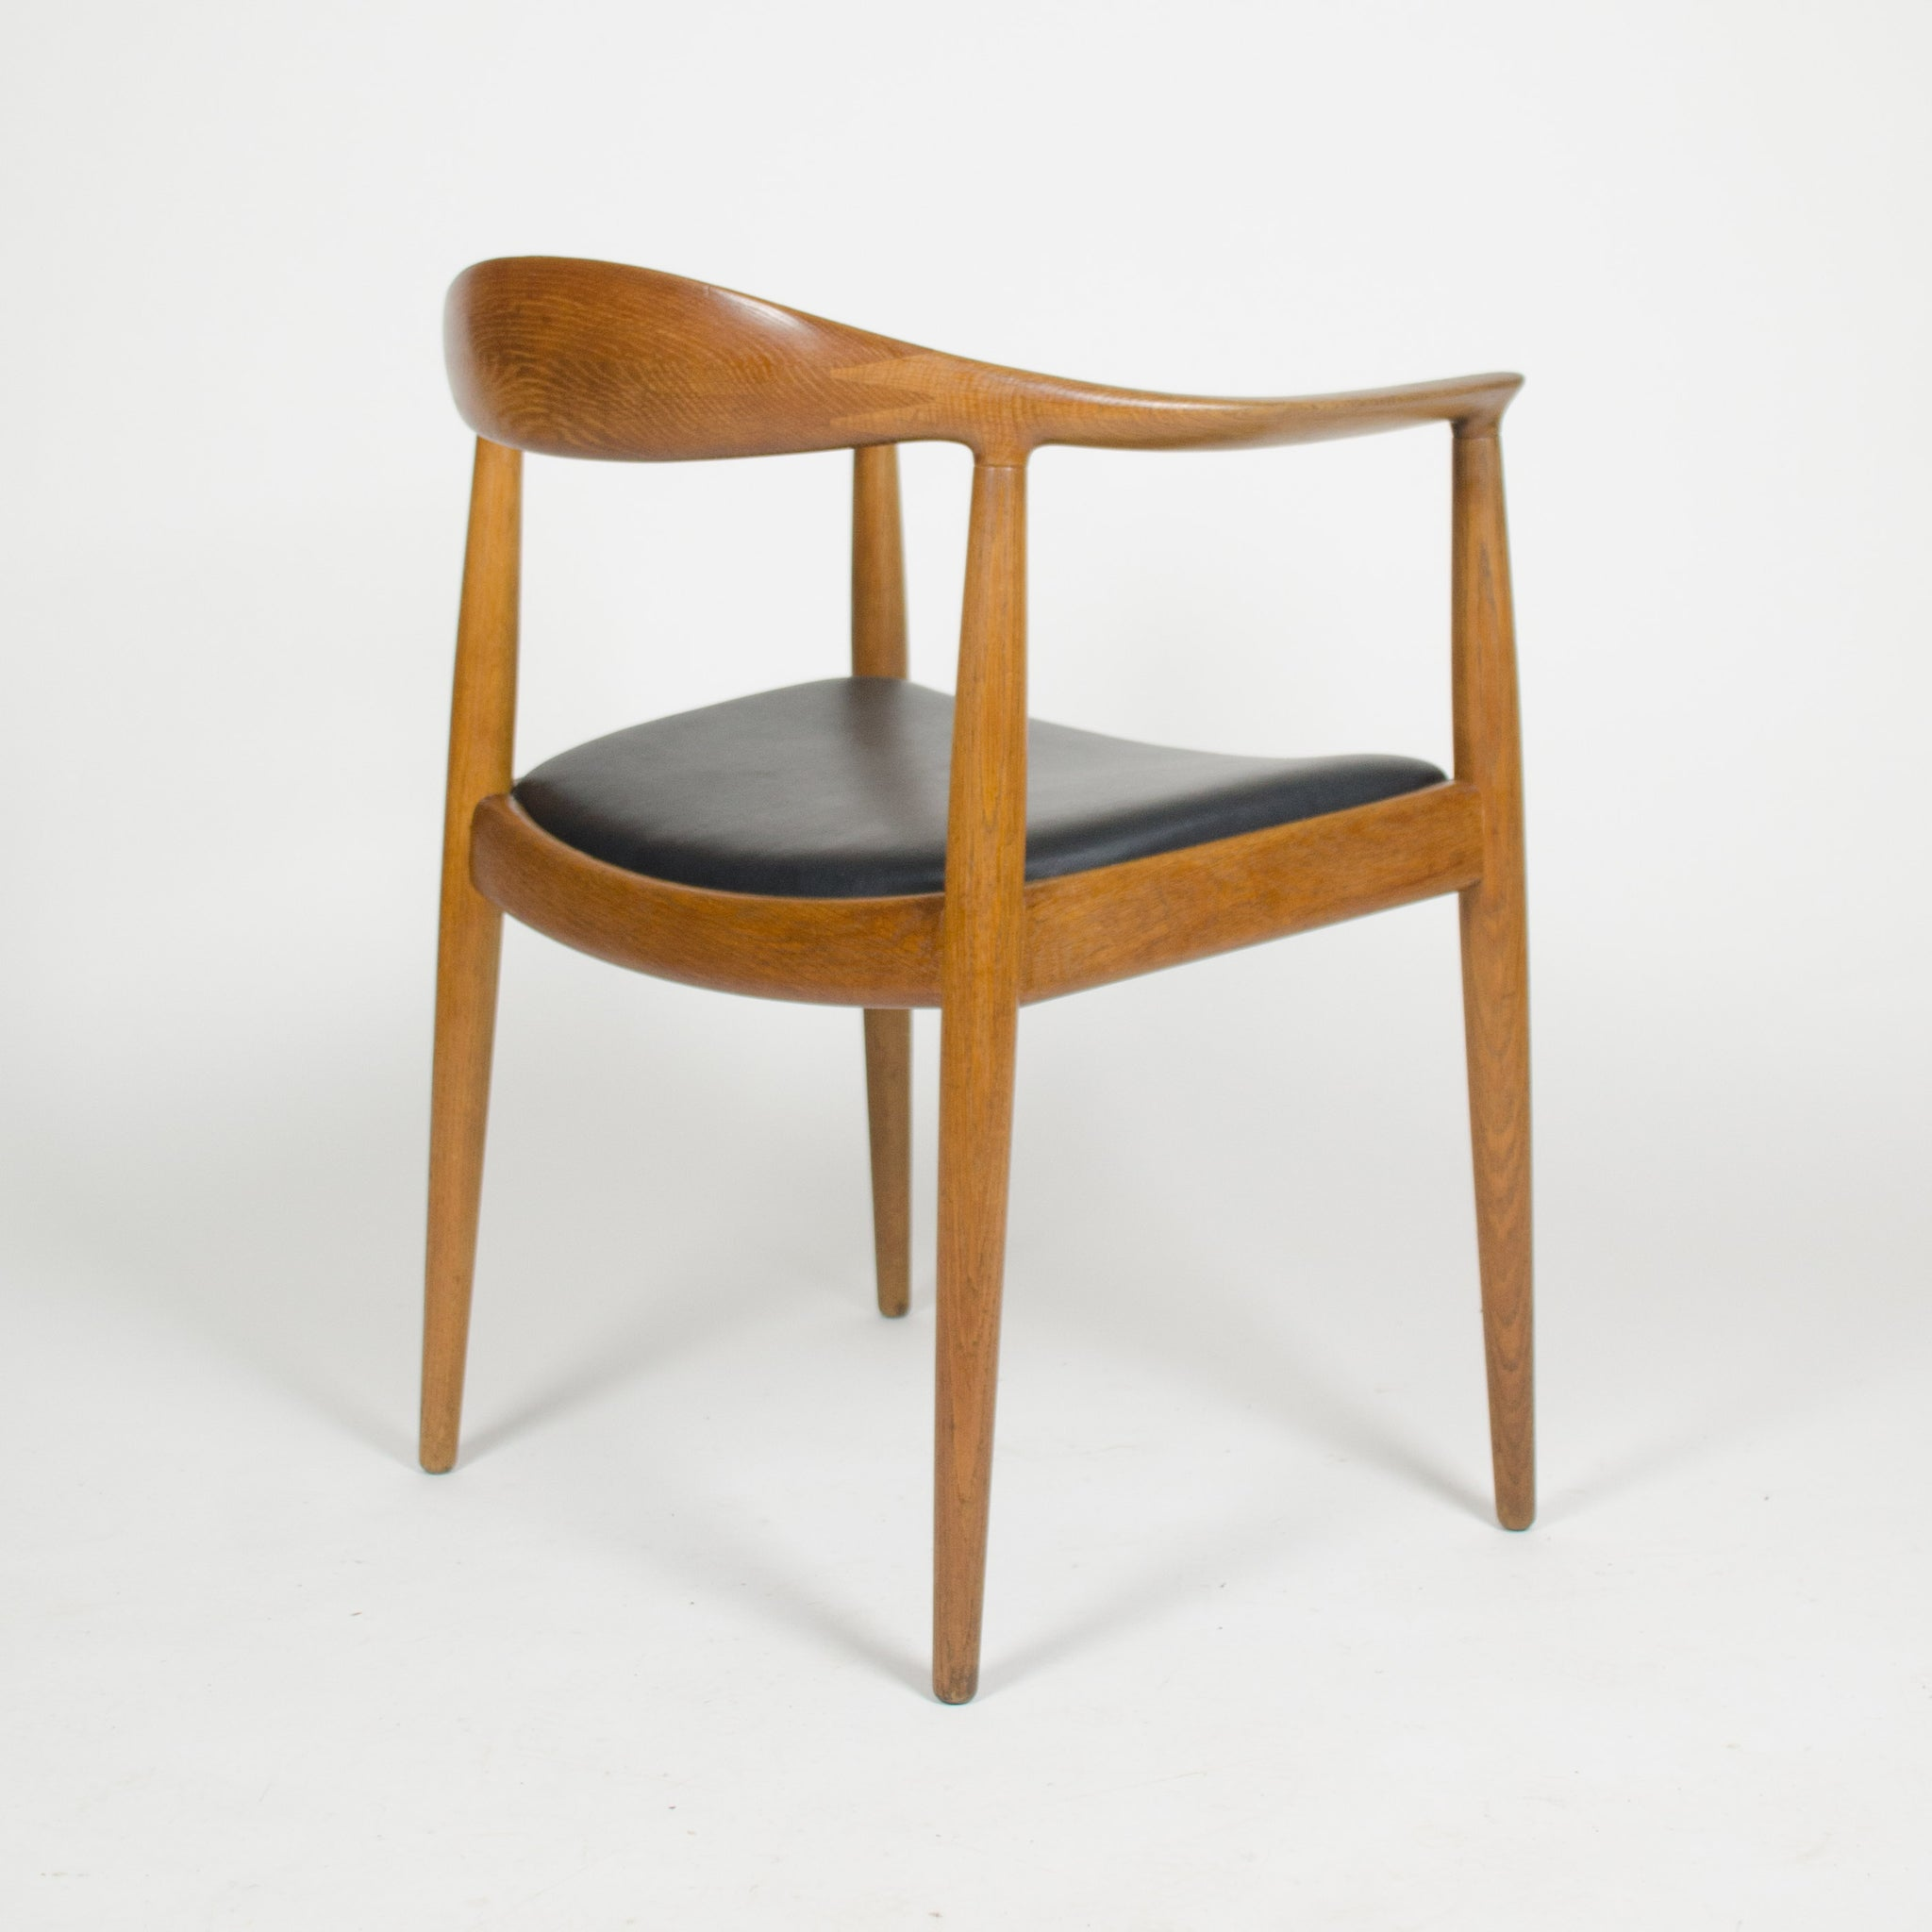 SOLD 1960's Set of Hans Wegner Round The Chair Johannes Hansen For Knoll Danish Oak Armchairs